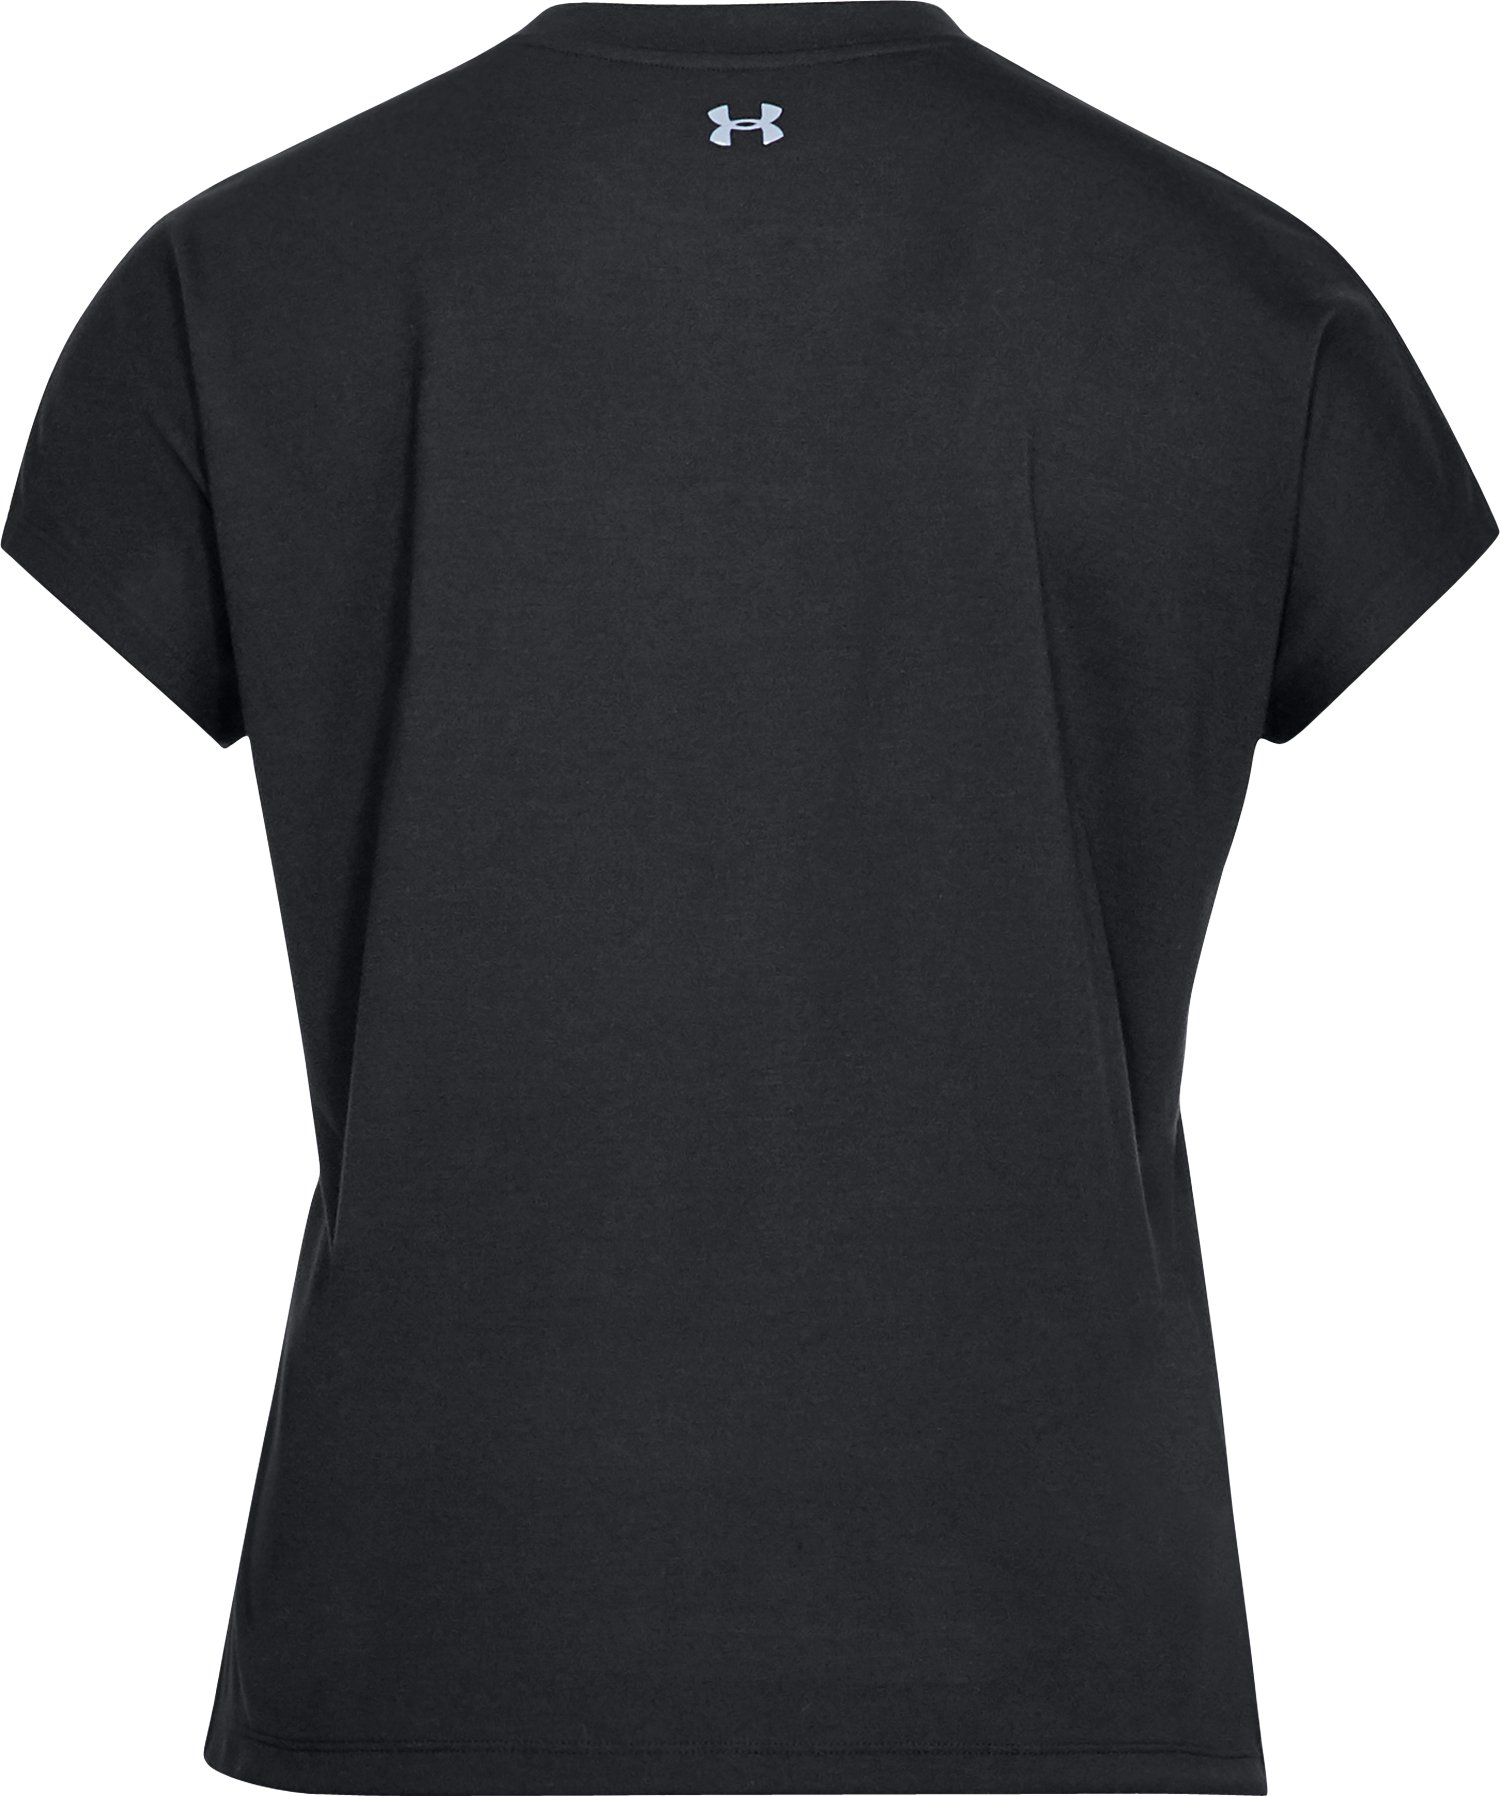 Women's UA Essentials Triangle T-Shirt, Black , undefined